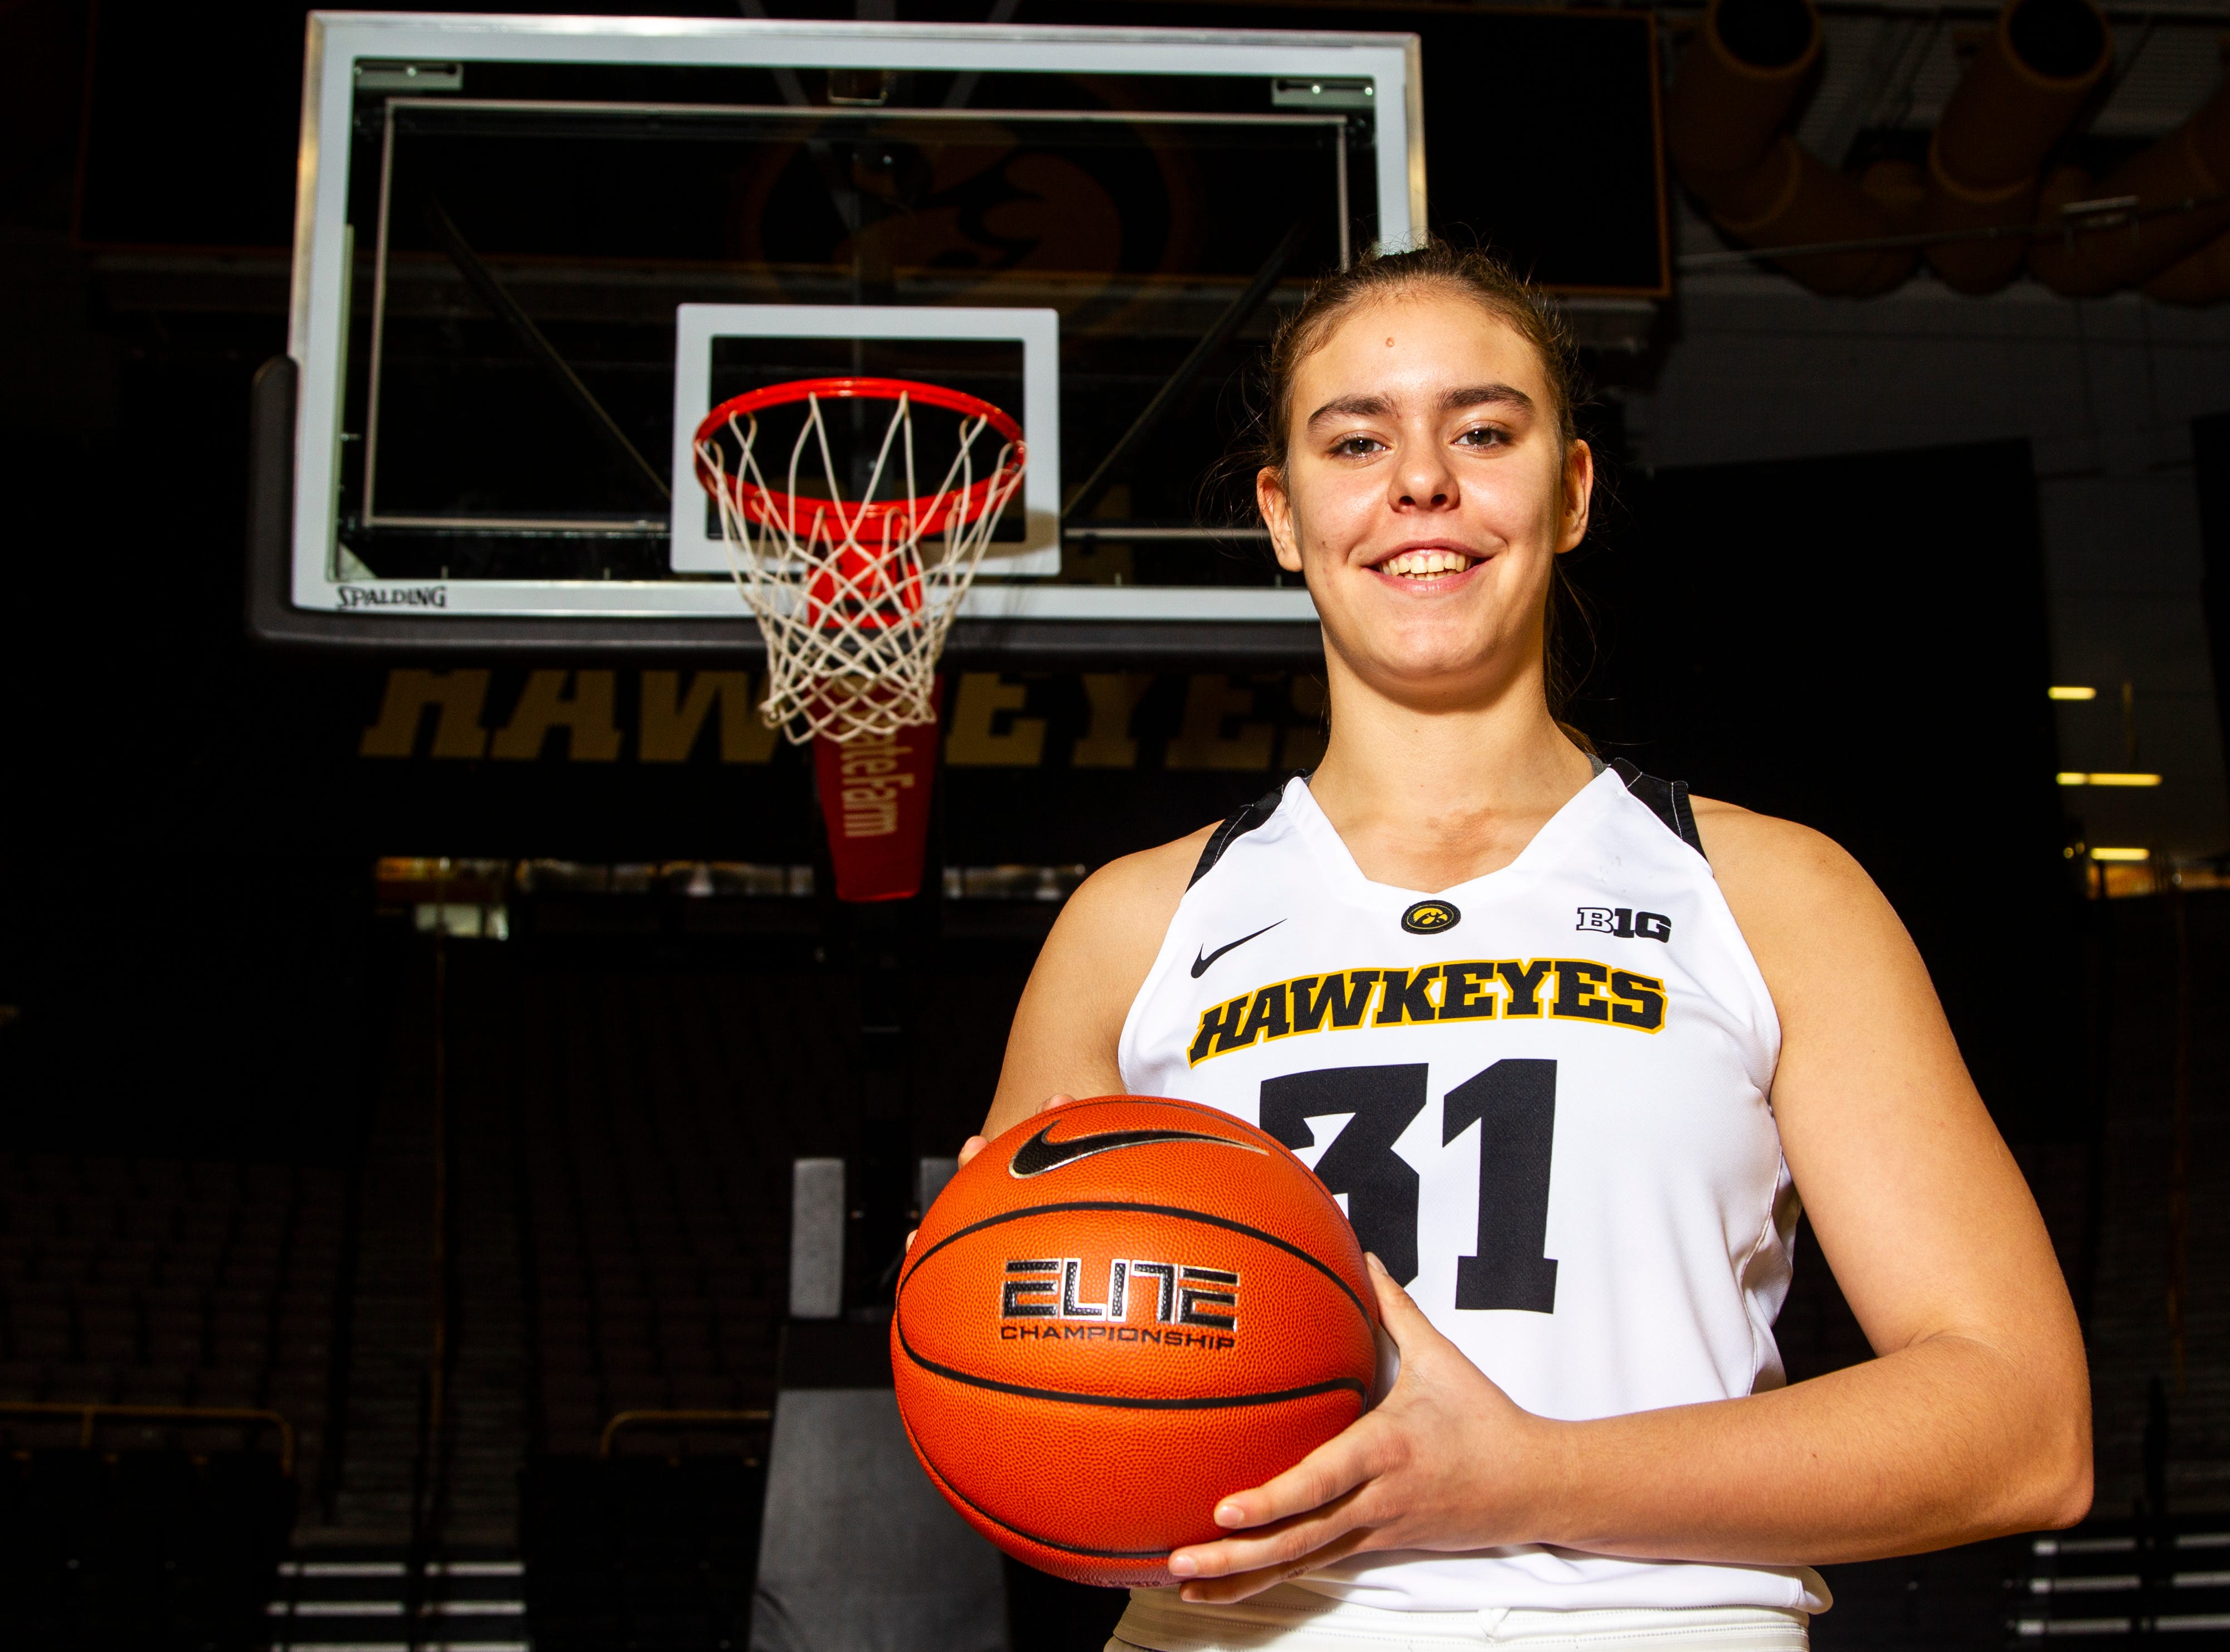 Iowa's Paula Valino Ramos (31) poses for a portrait during Hawkeye women's basketball media day on Wednesday, Oct. 31, 2018, at Carver-Hawkeye Arena in Iowa City.